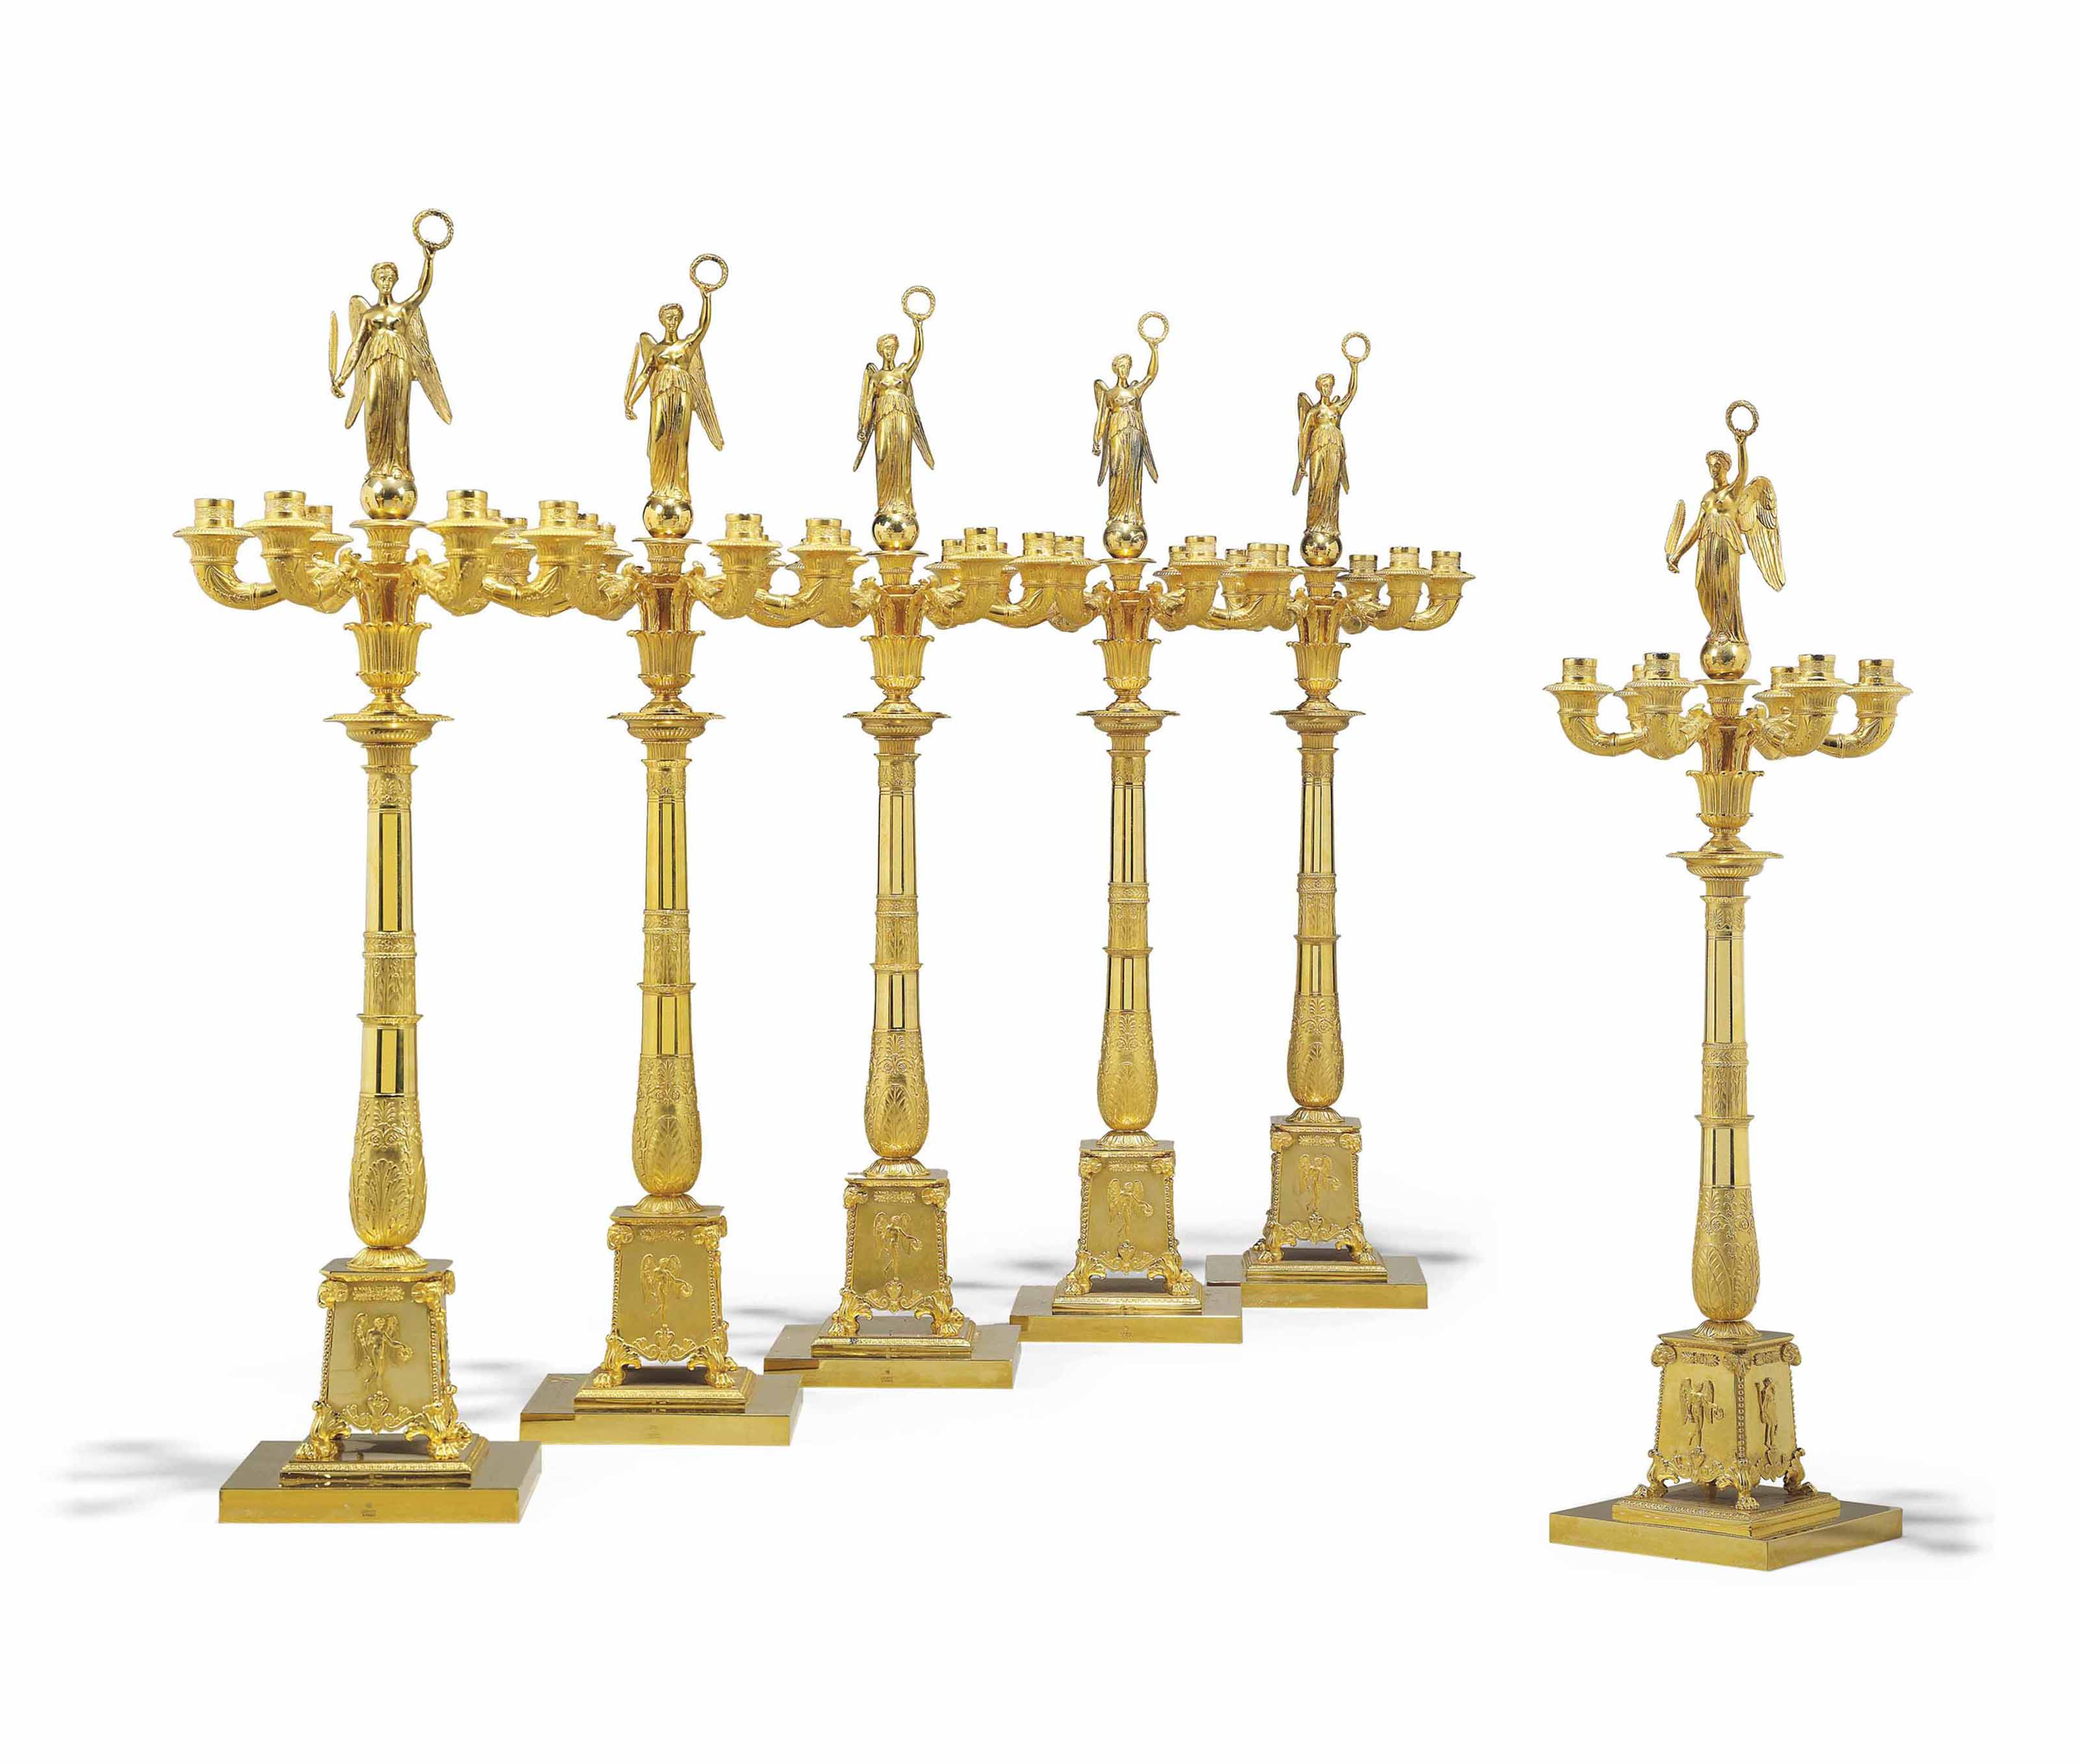 A SET OF SIX FRENCH ORMOLU SIX-LIGHT CANDELABRA